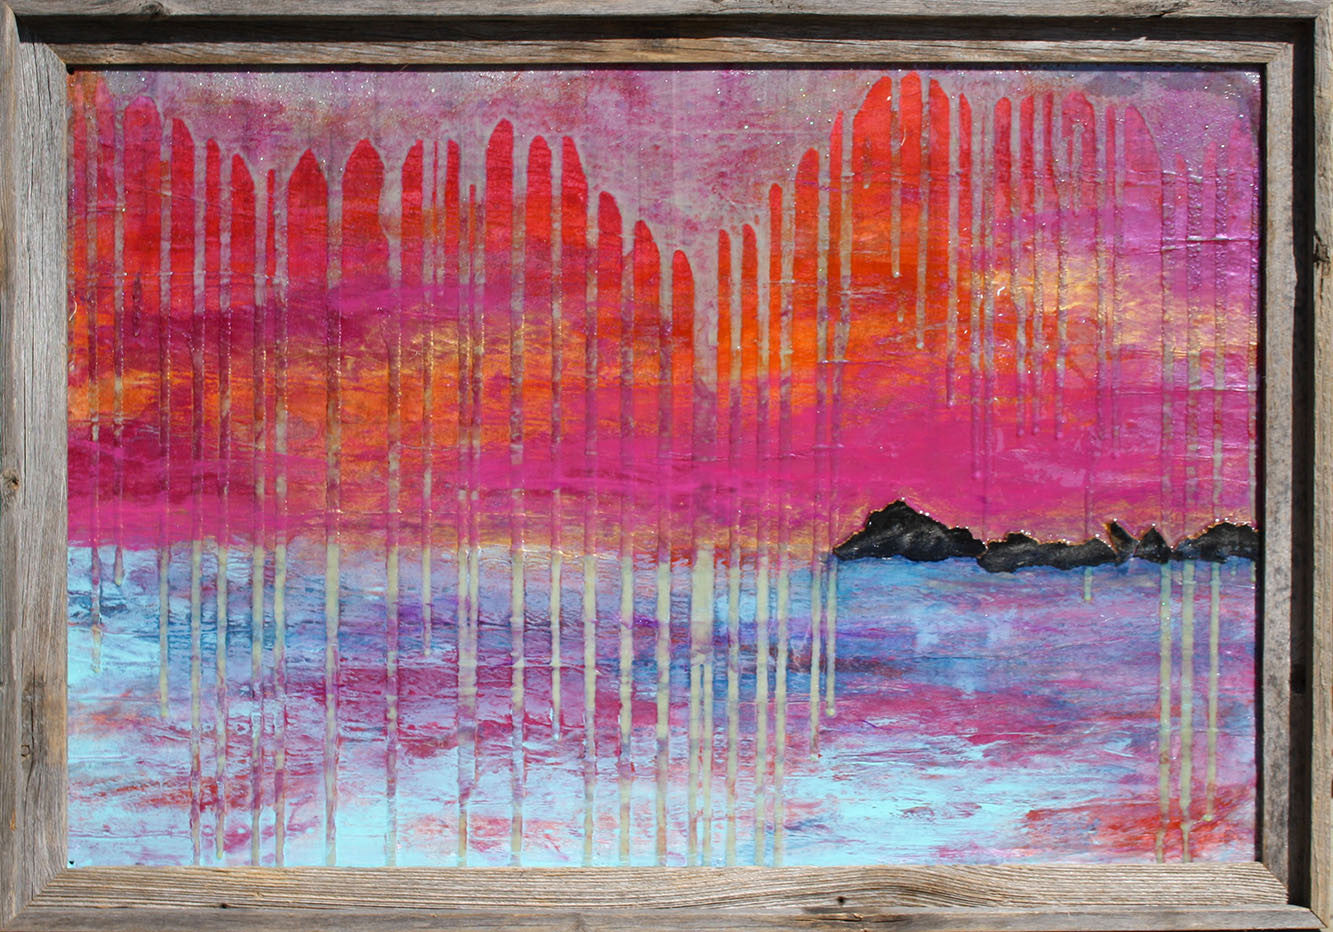 Black's Island / 36 x 24 / mixed media with barnwood frame